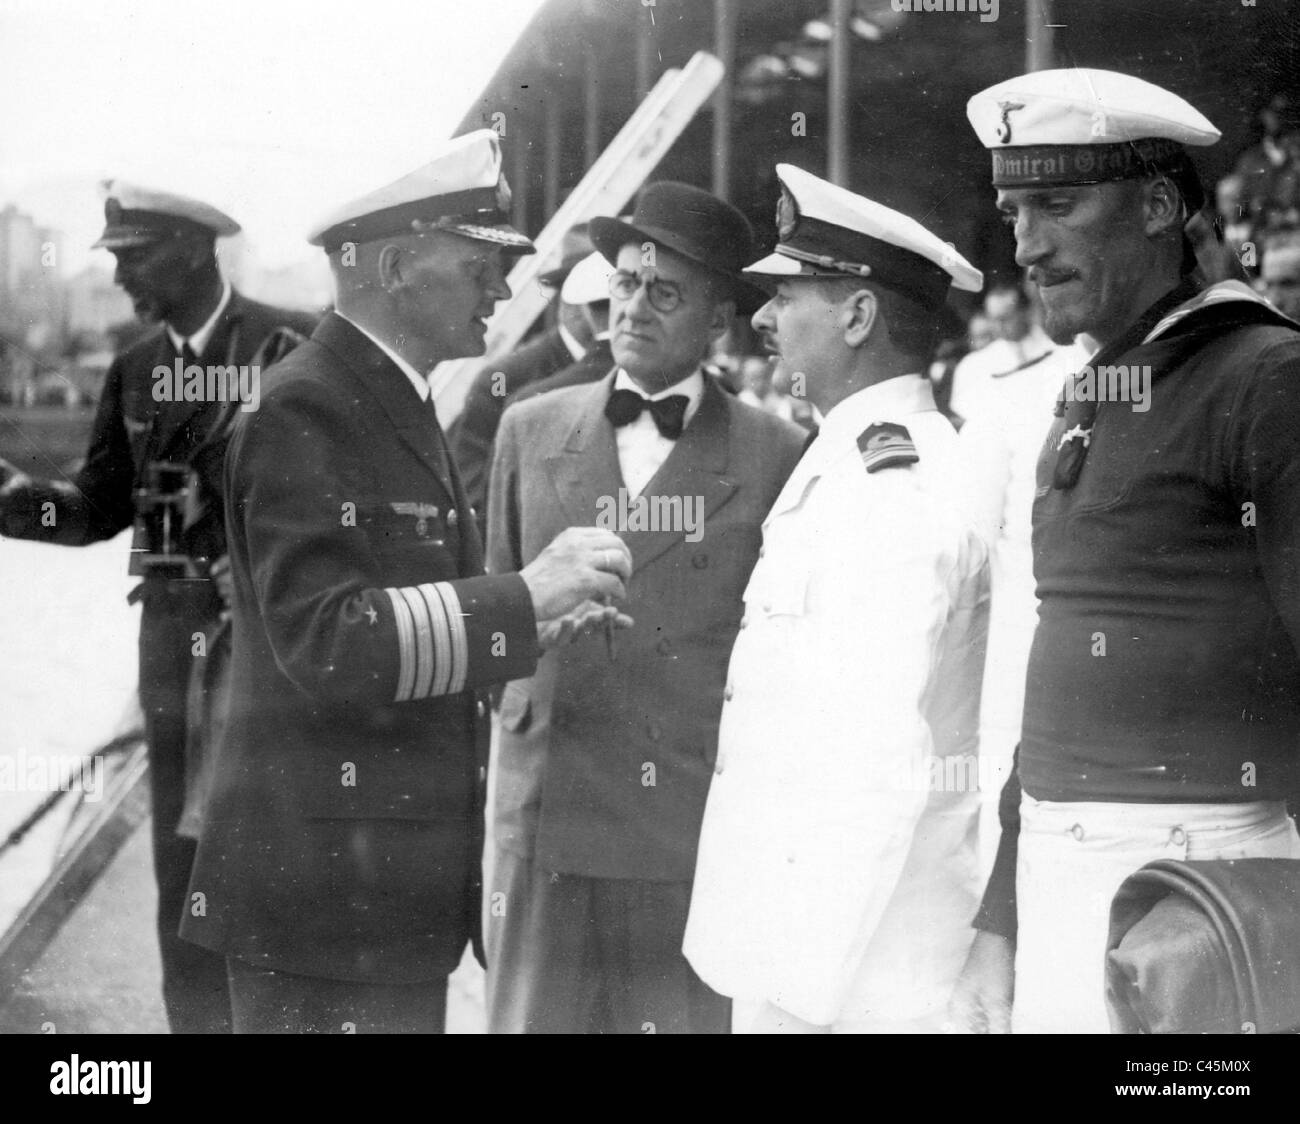 Captain Langsdorff talks with Argentinean officers - Stock Image